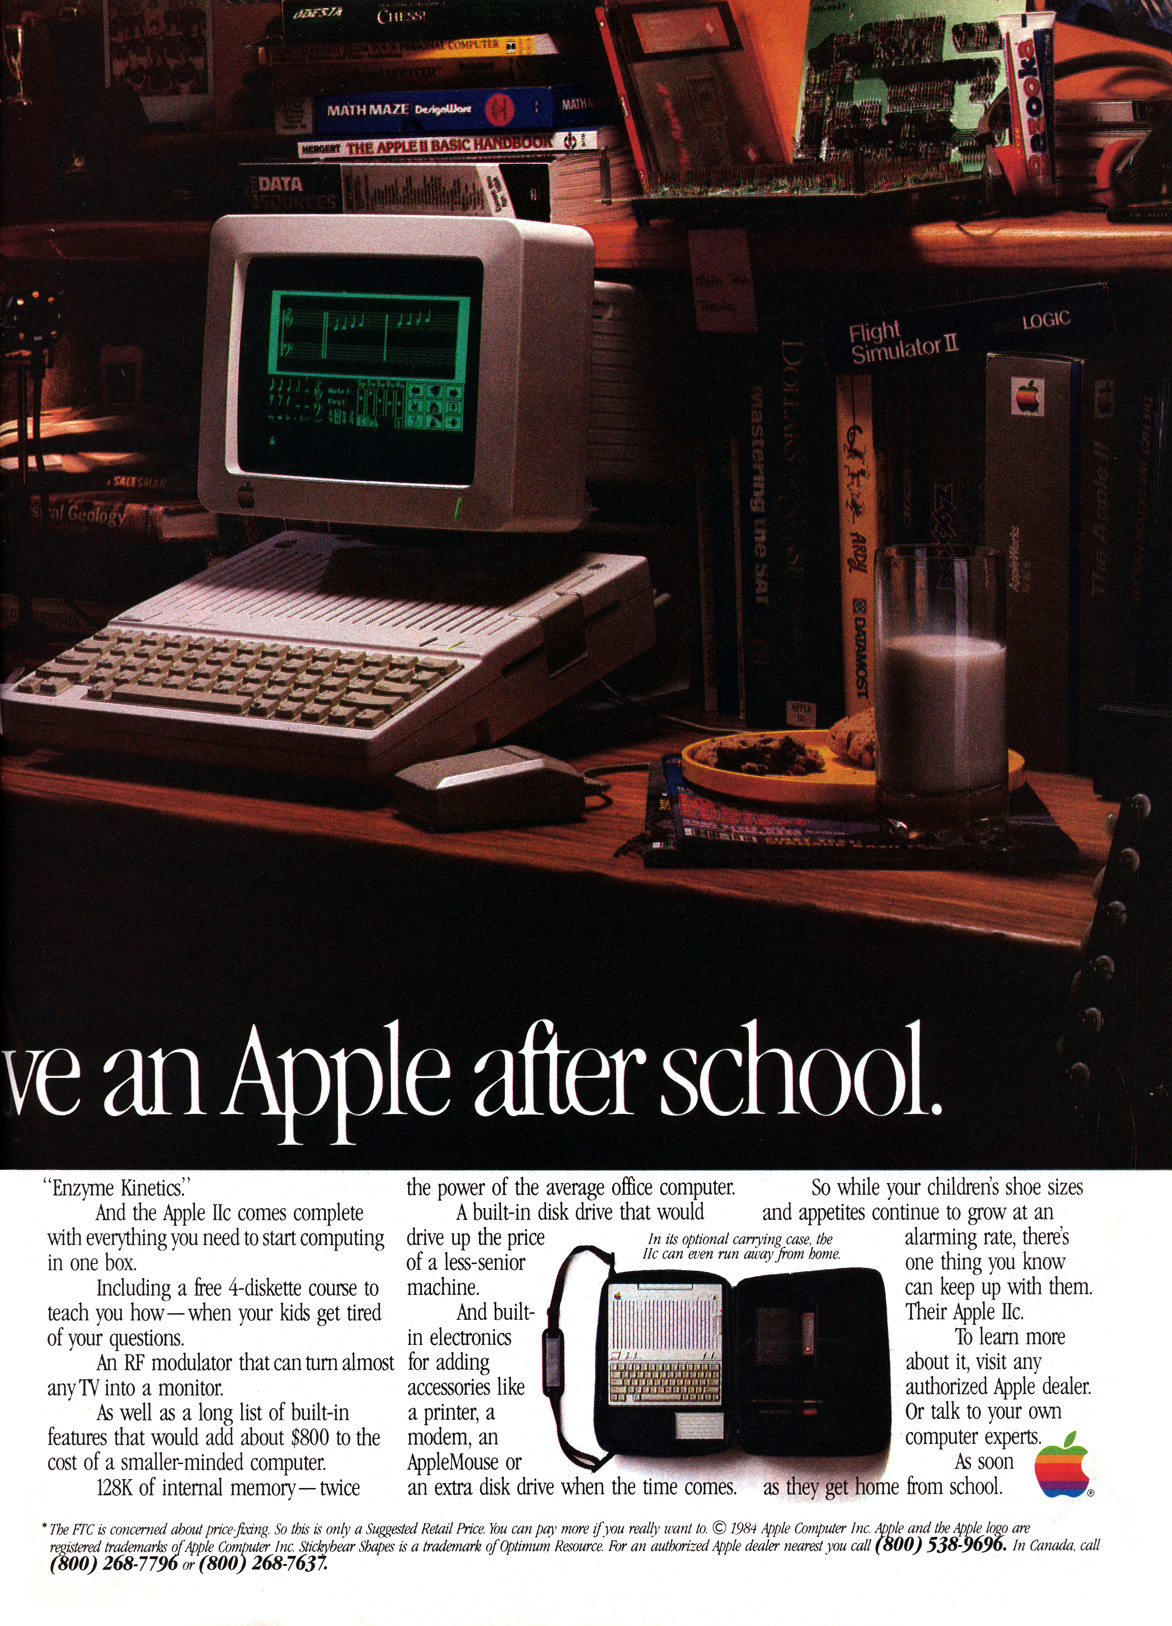 Apple iic advertisement from personal computing 1 1985 page 2